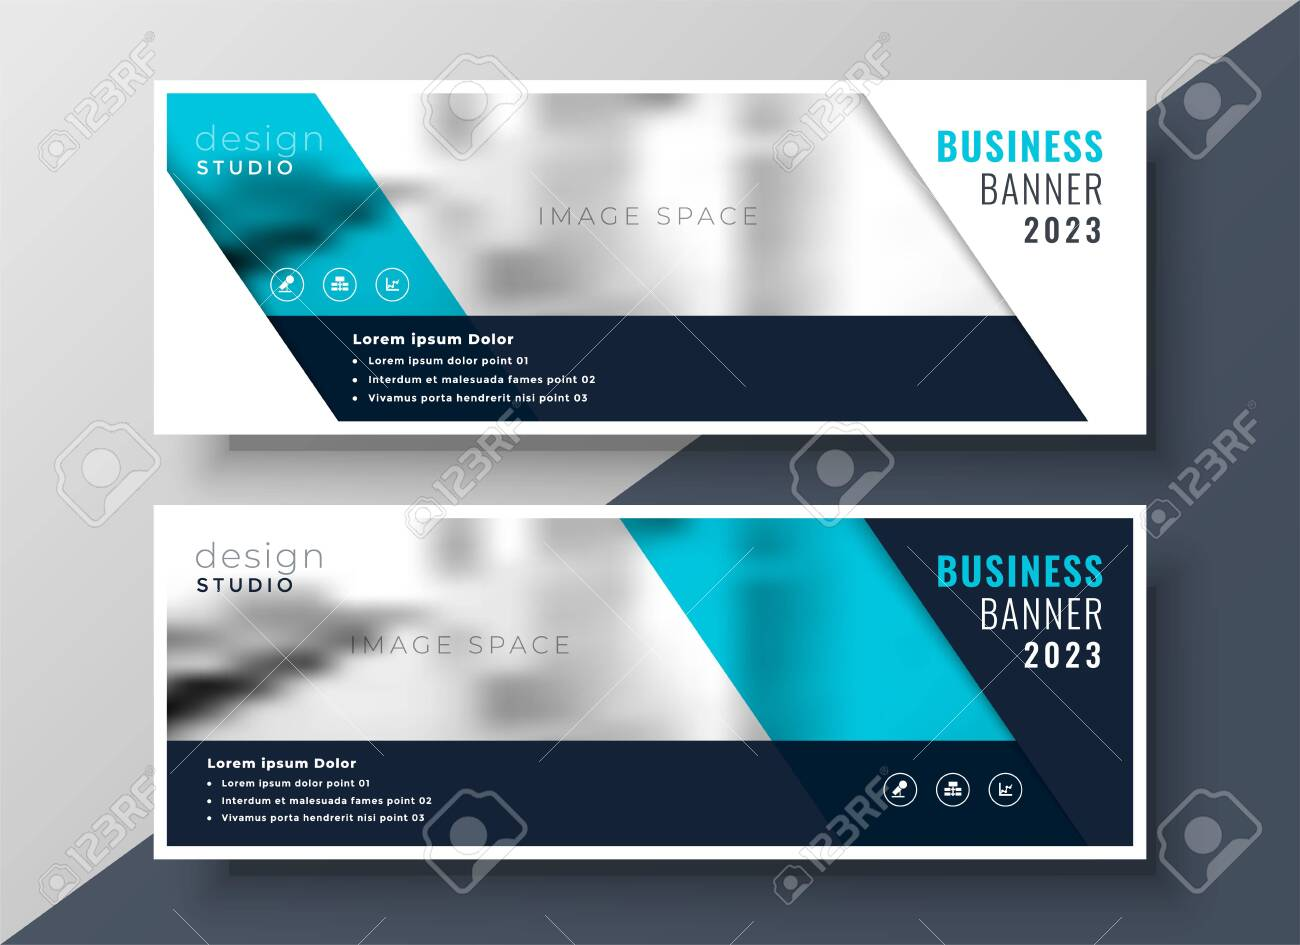 elegant business banner design with image space - 149166593